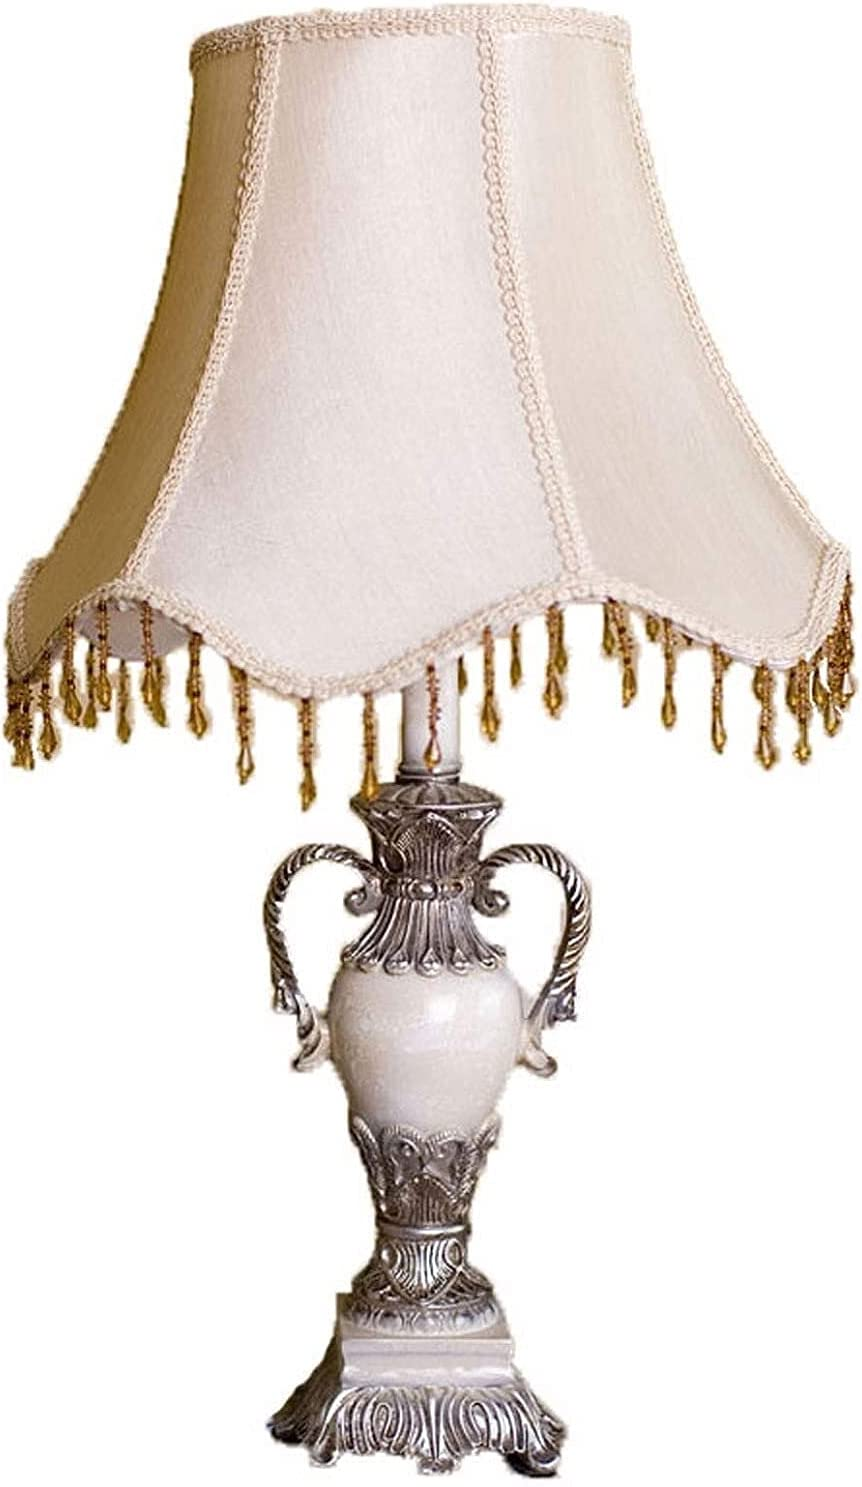 Hangarone Table Lamps European Home Lamp Decorating Style San Diego Mall 4 years warranty